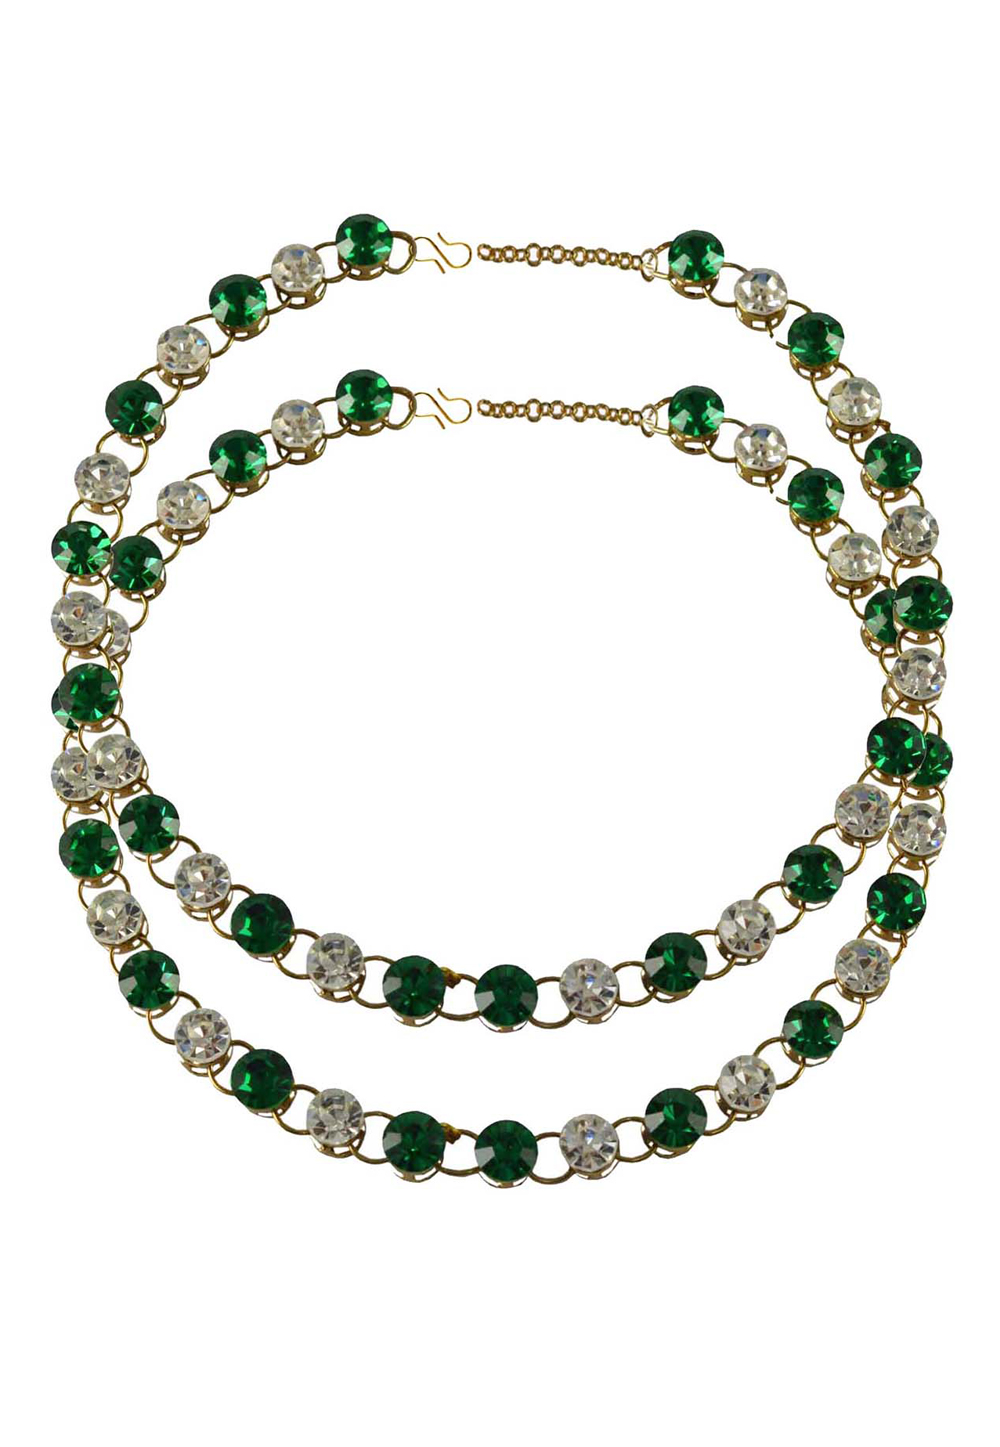 Green Brass Gold Plated Anklets 171269